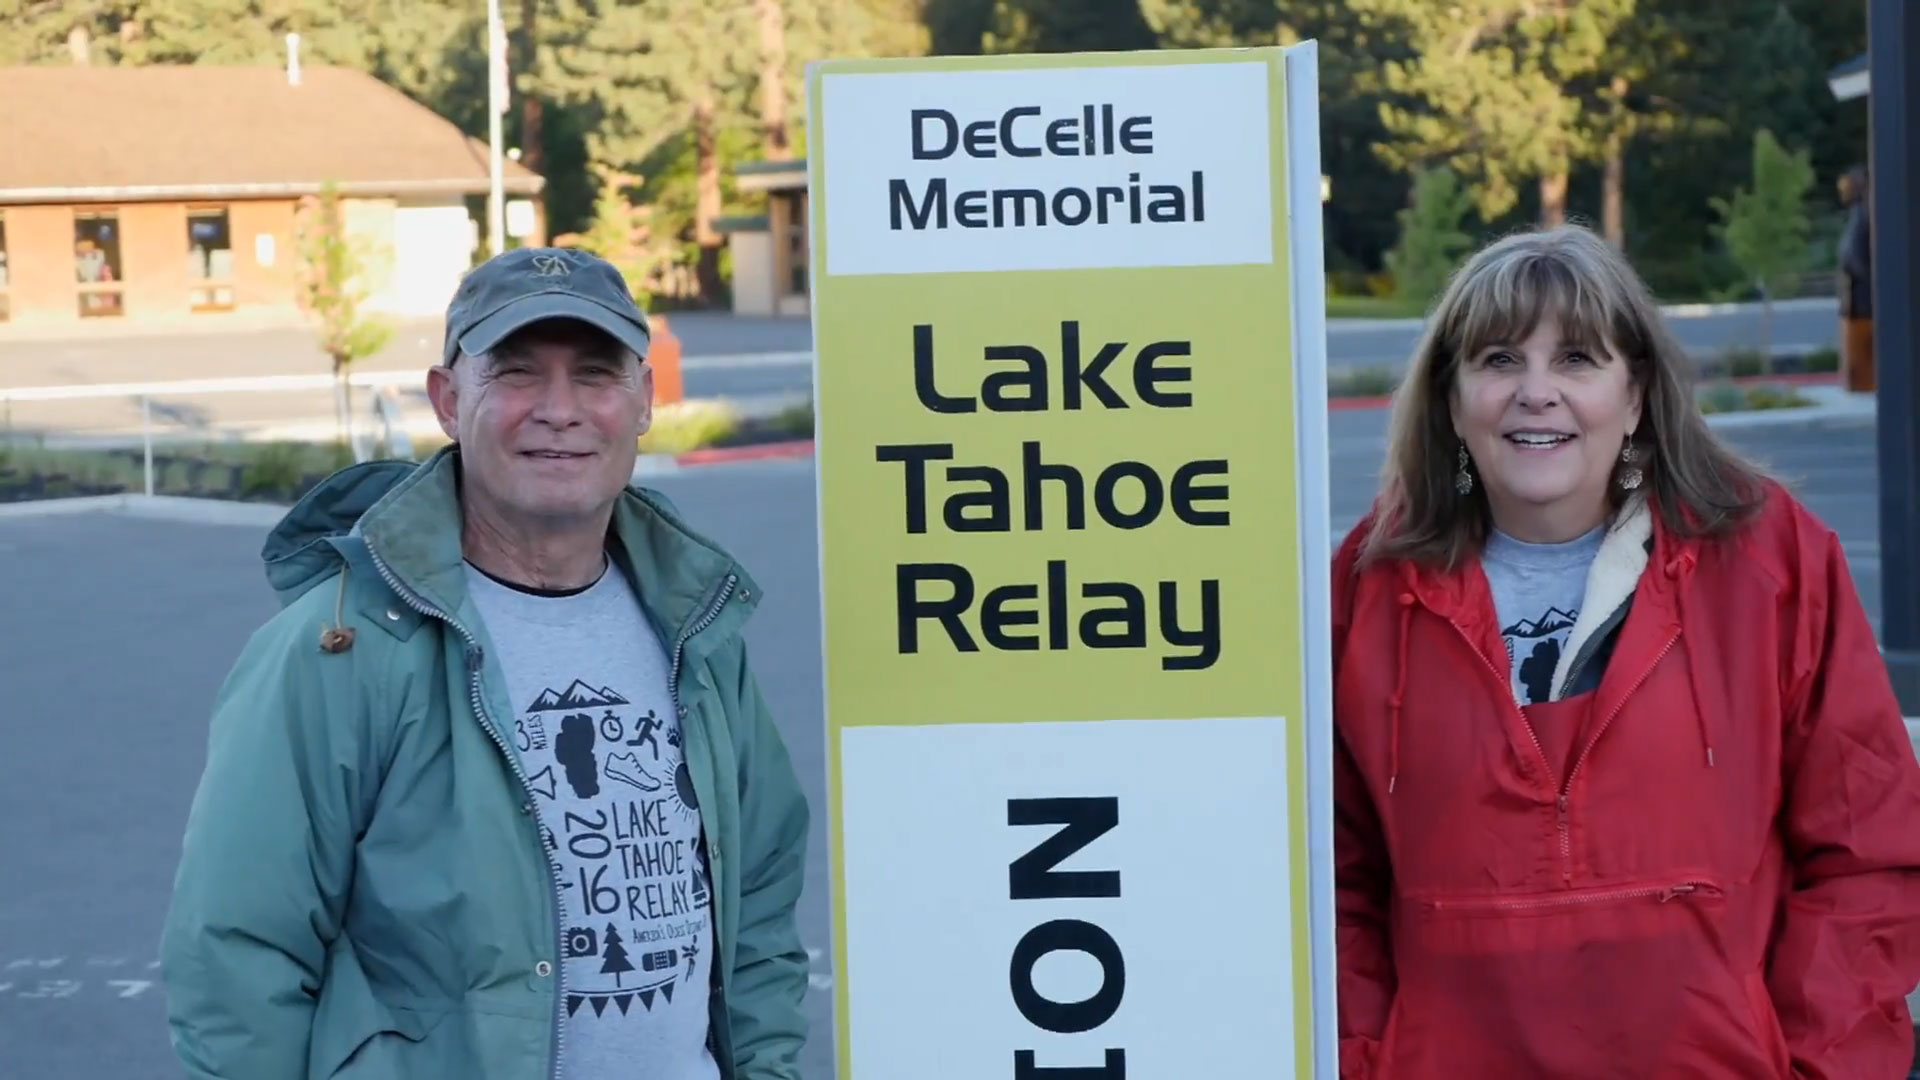 lake tahoe relay video preview